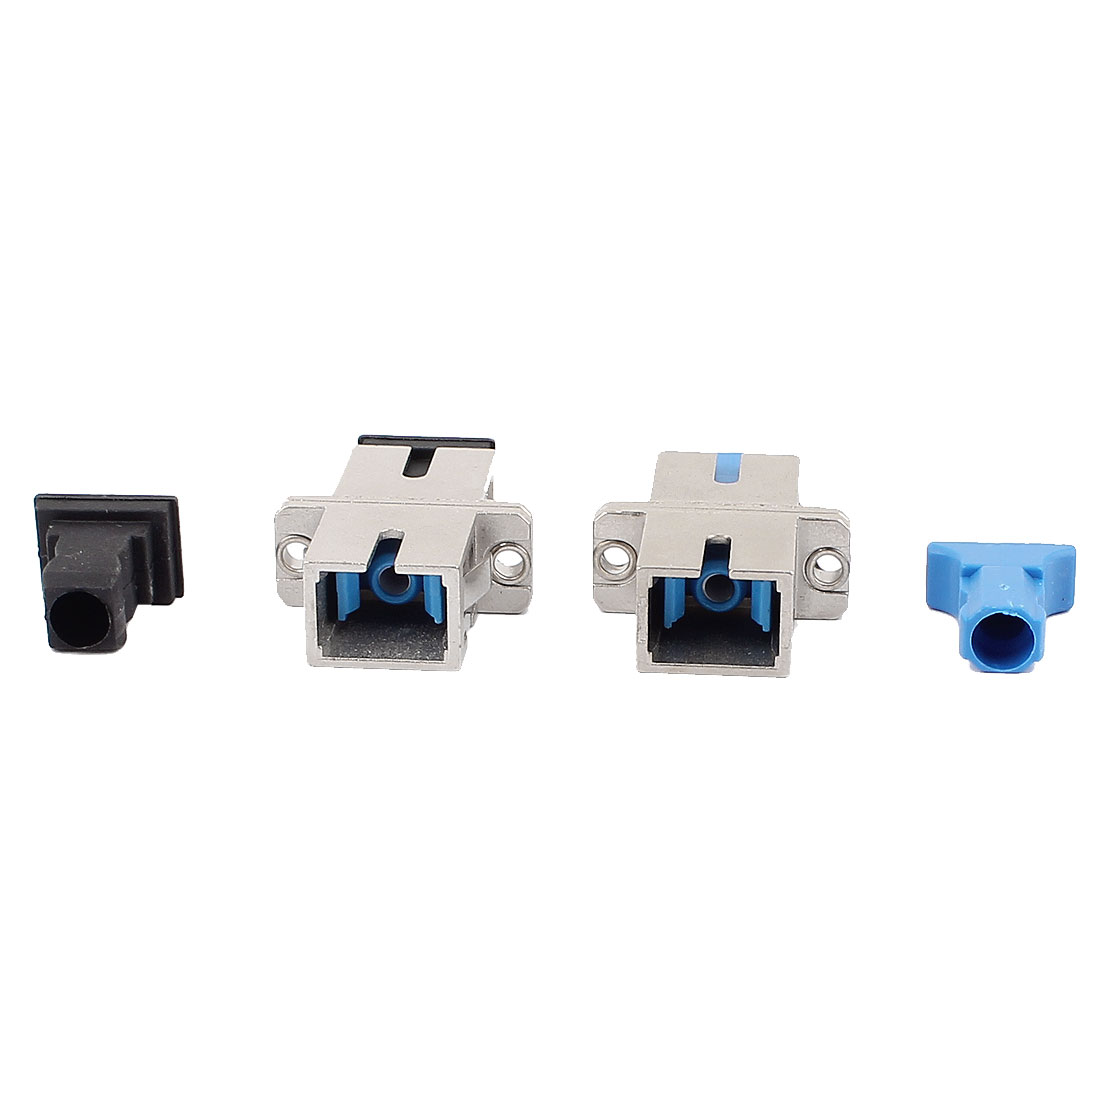 2 Pcs SM/MM SC/PC/APC Simplex Fibre Couplers Flange Adapters Optical Fiber Connectors